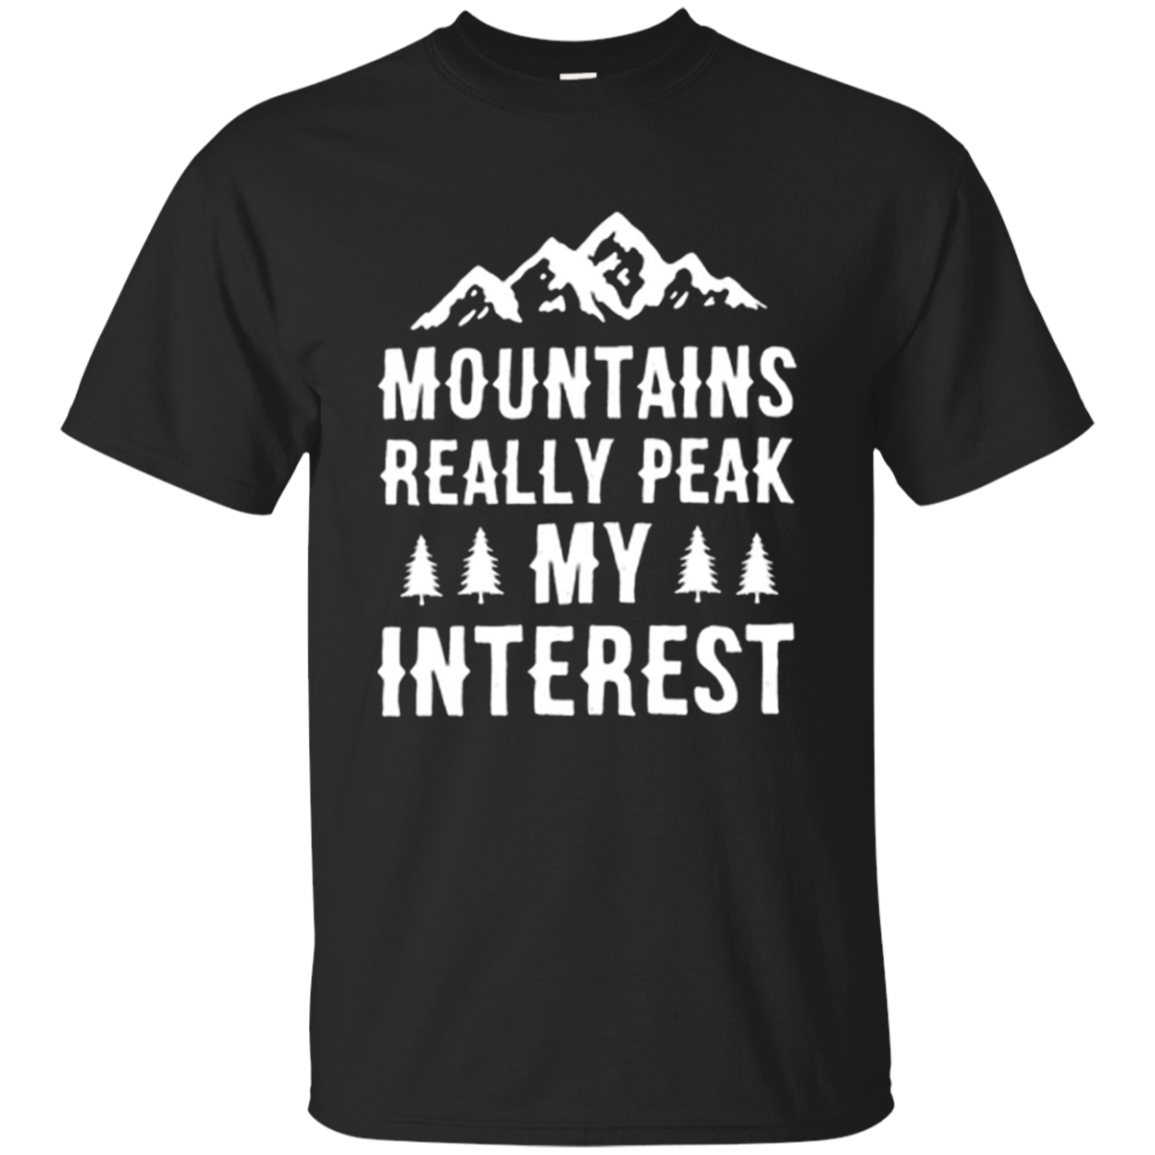 MOUNTAINS REALLY PEAK MY INTEREST Hiking T Shirt Hoodies Sweatshirt